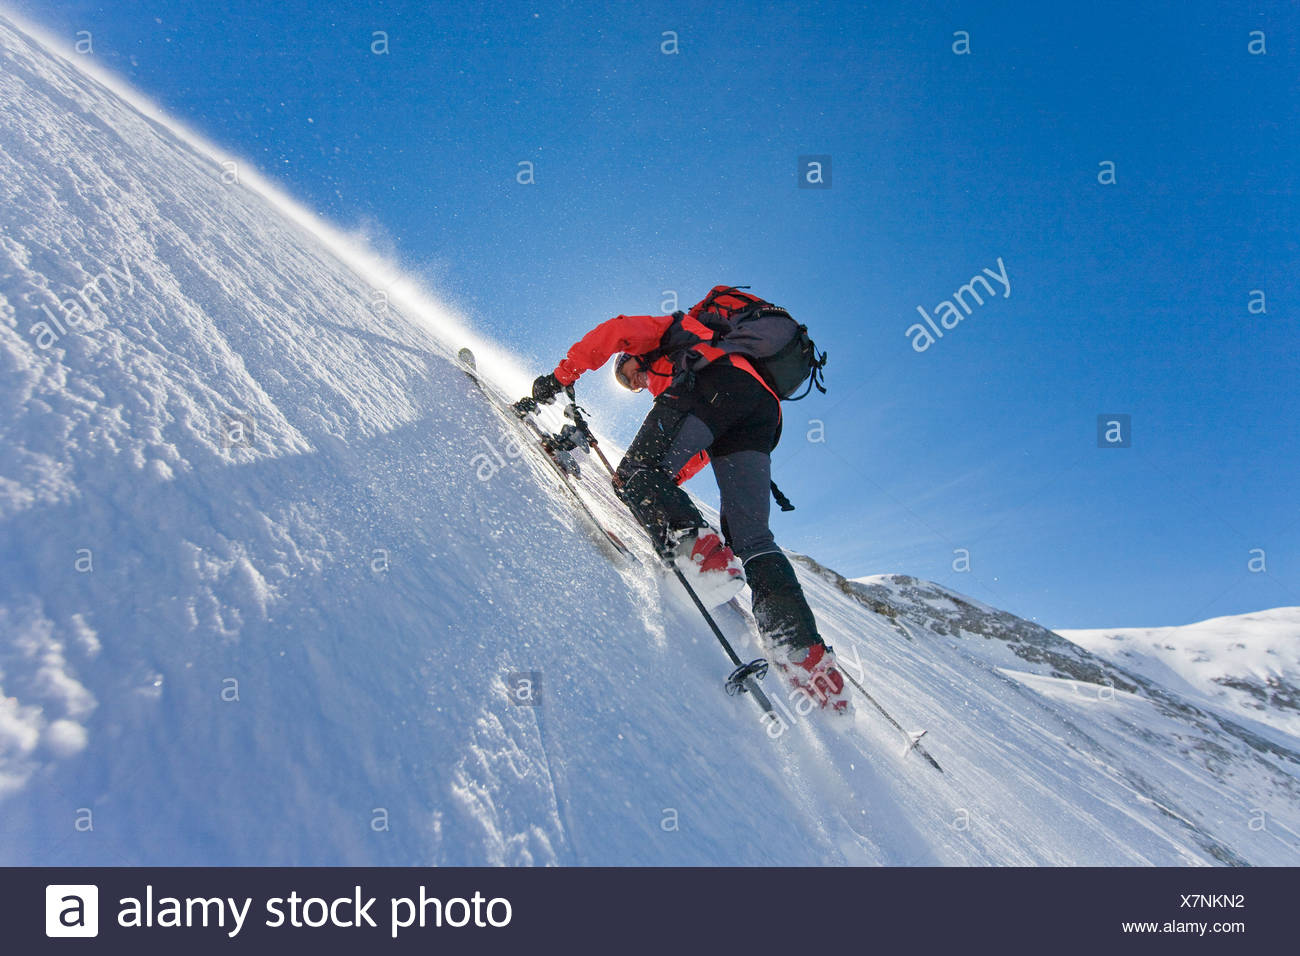 Rear view of skier climbing snowcovered mountain with skis, Knallstein, Tennengebirge, Tennengau, Salzburg, Austria - Stock Image